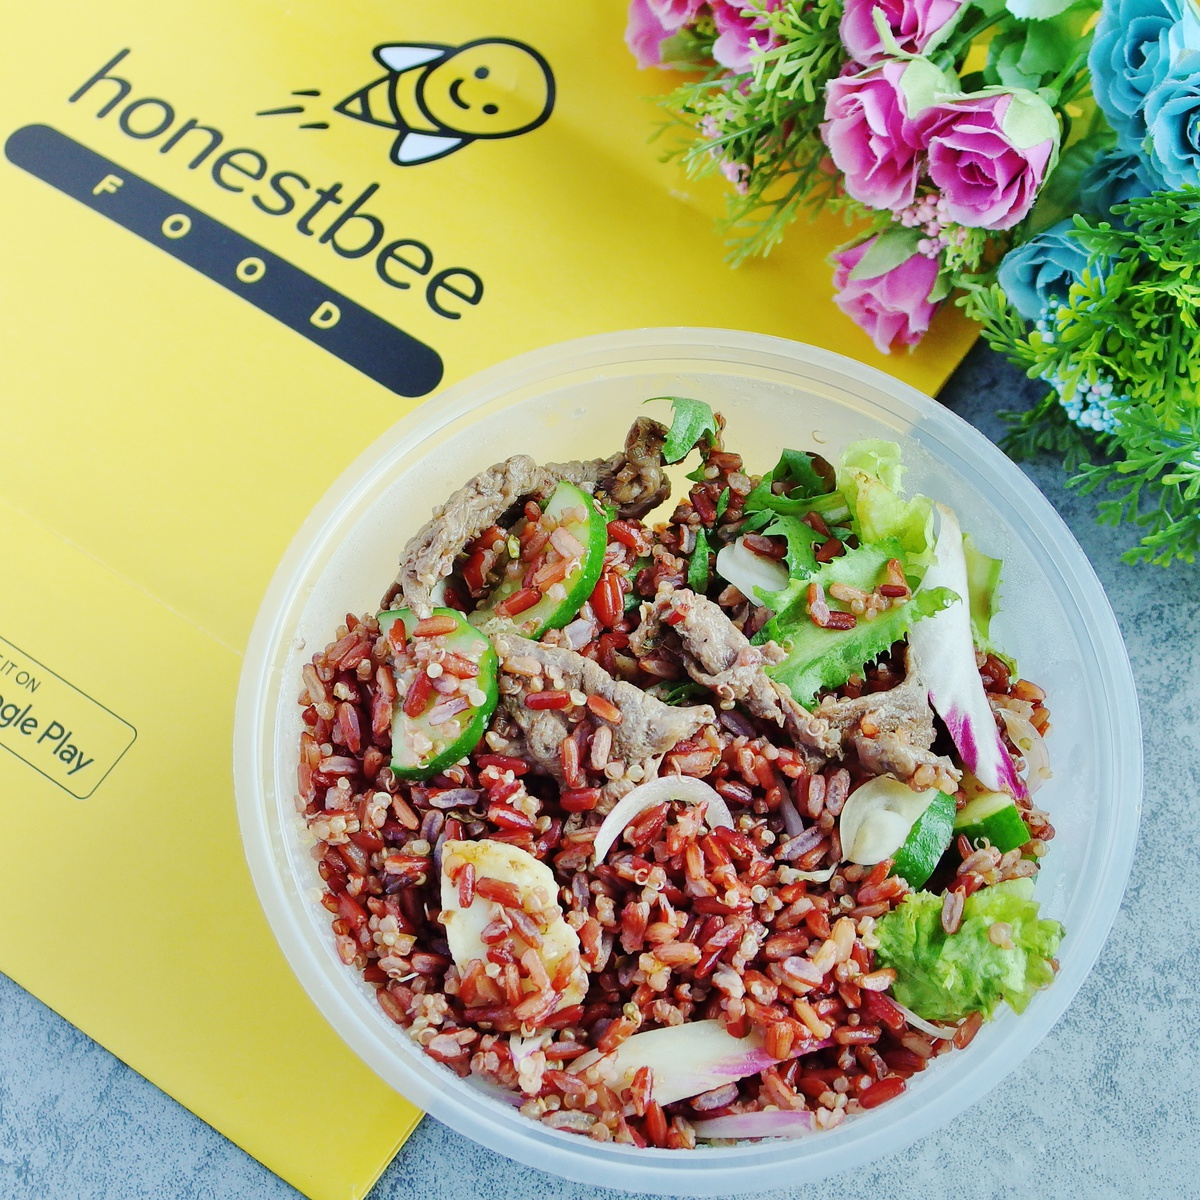 honestbee Food Delivery - Sumo Salad